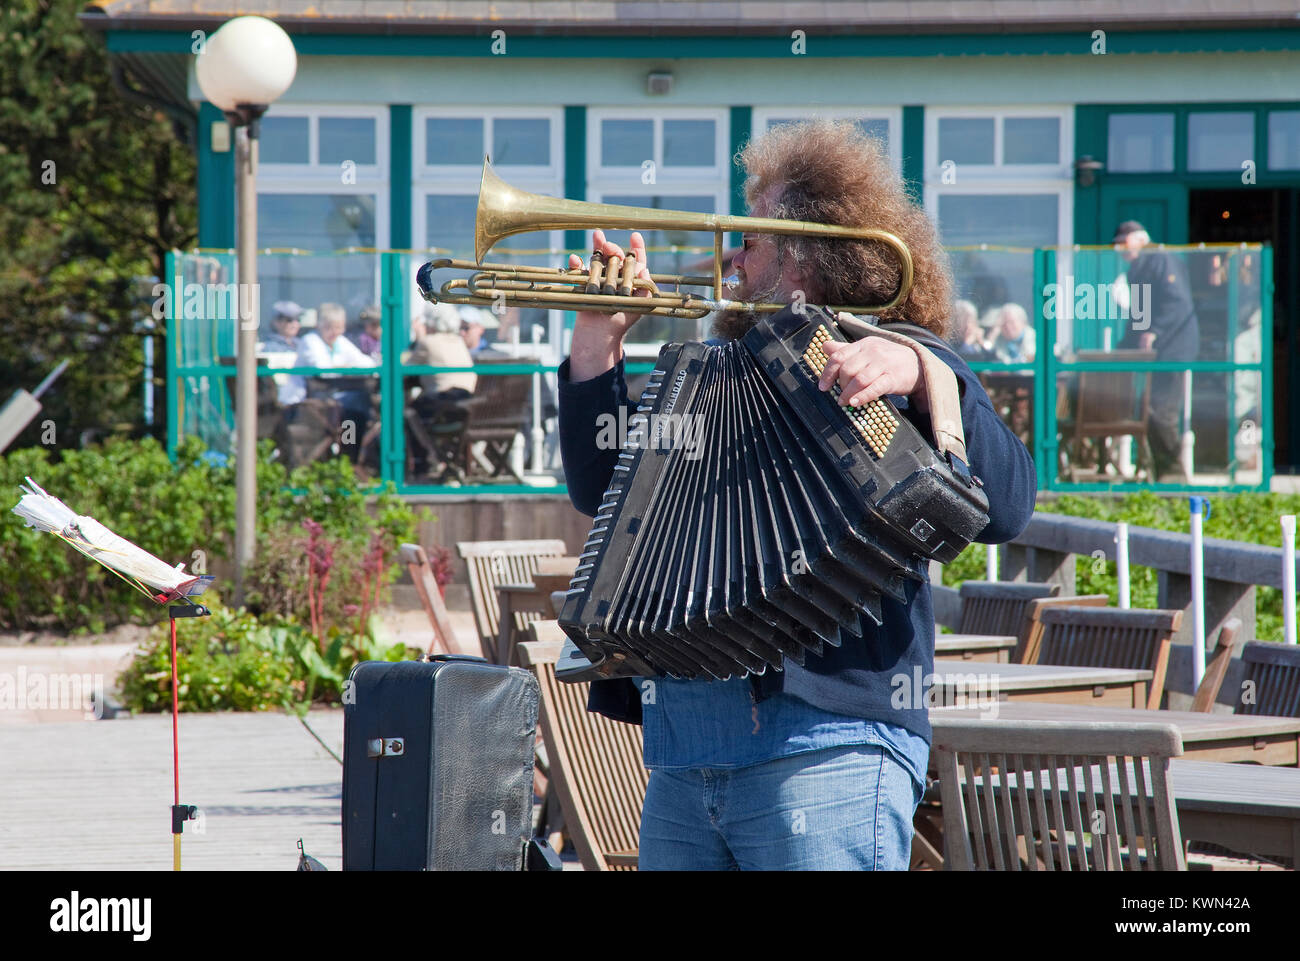 Street musician at the pier of Wustrow, Fishland, Mecklenburg-Western Pomerania, Baltic sea, Germany, Europe - Stock Image